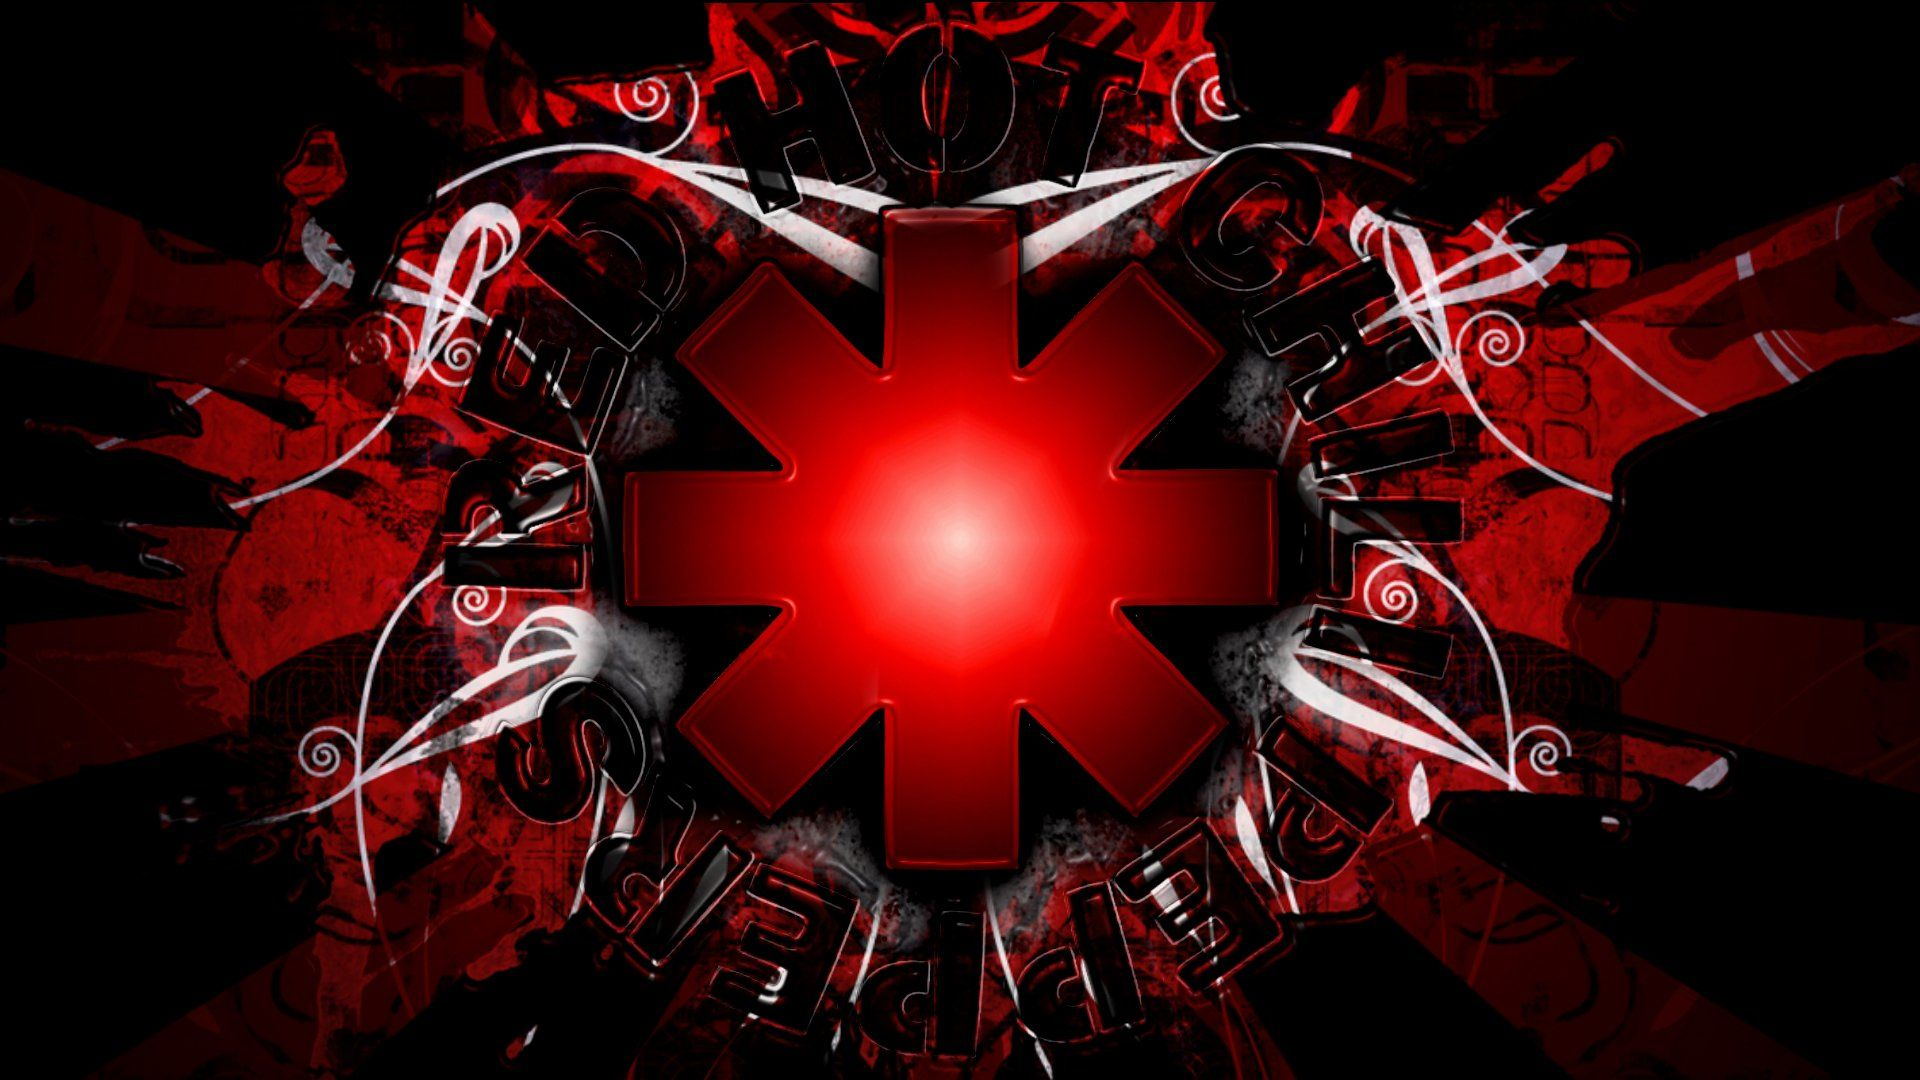 Red Hot Chili Peppers Wallpapers Top Free Red Hot Chili Peppers